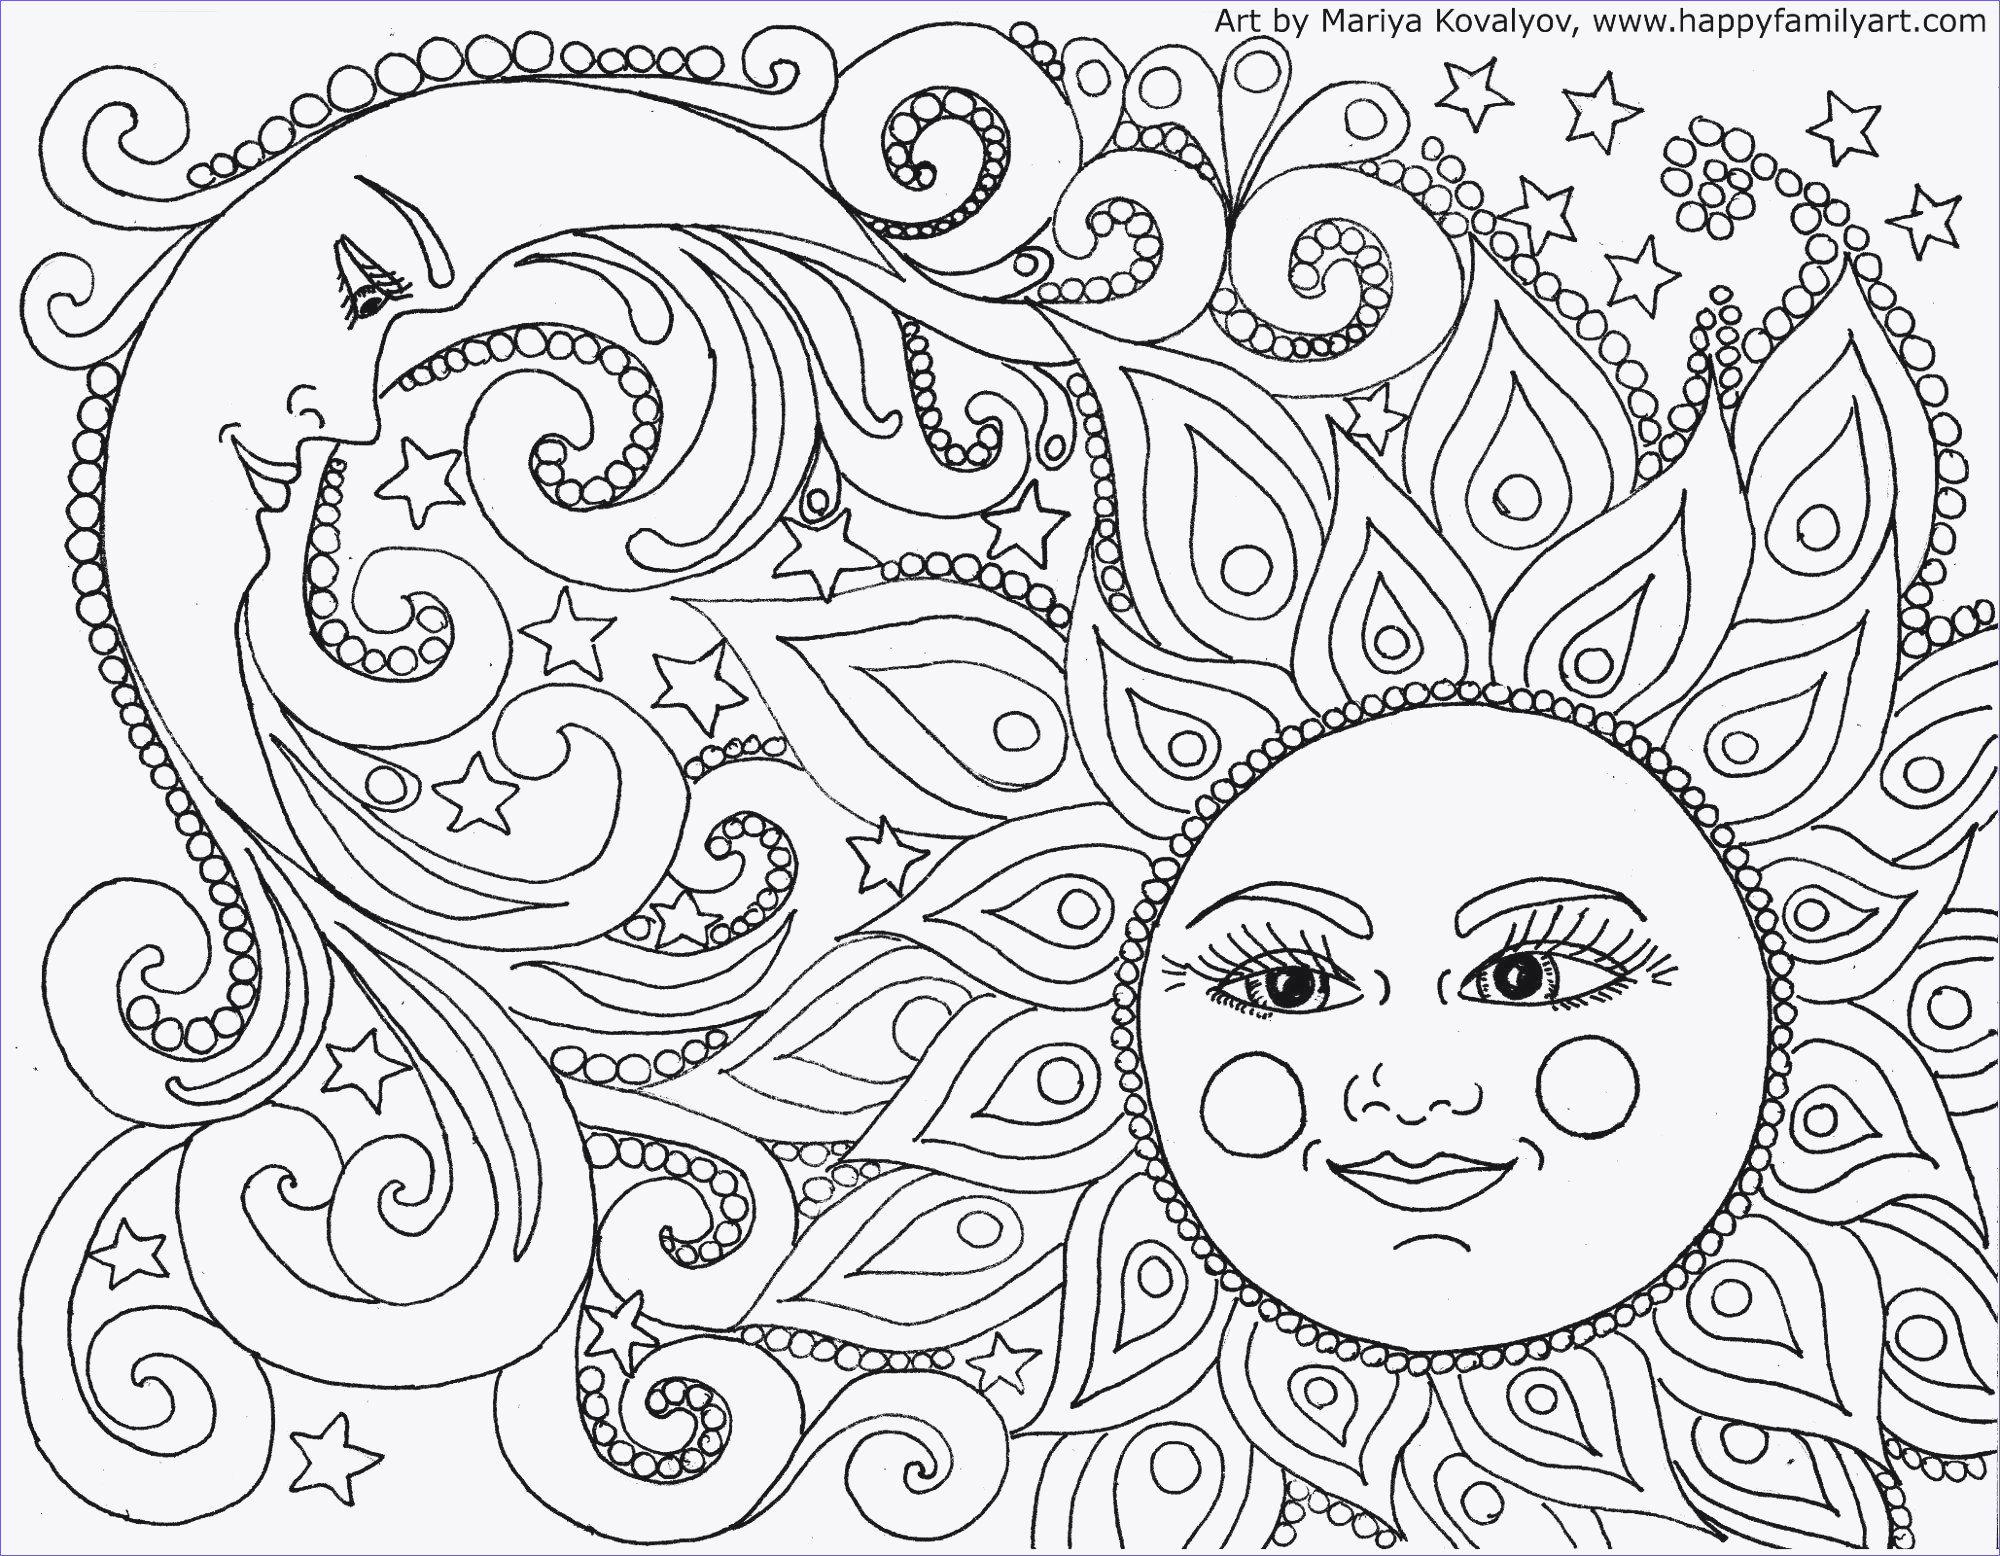 mandala coloring pages online Collection-Dc Coloring Pages Awesome 45 Ausmalbilder Fur Erwachsene Mandala 20-j